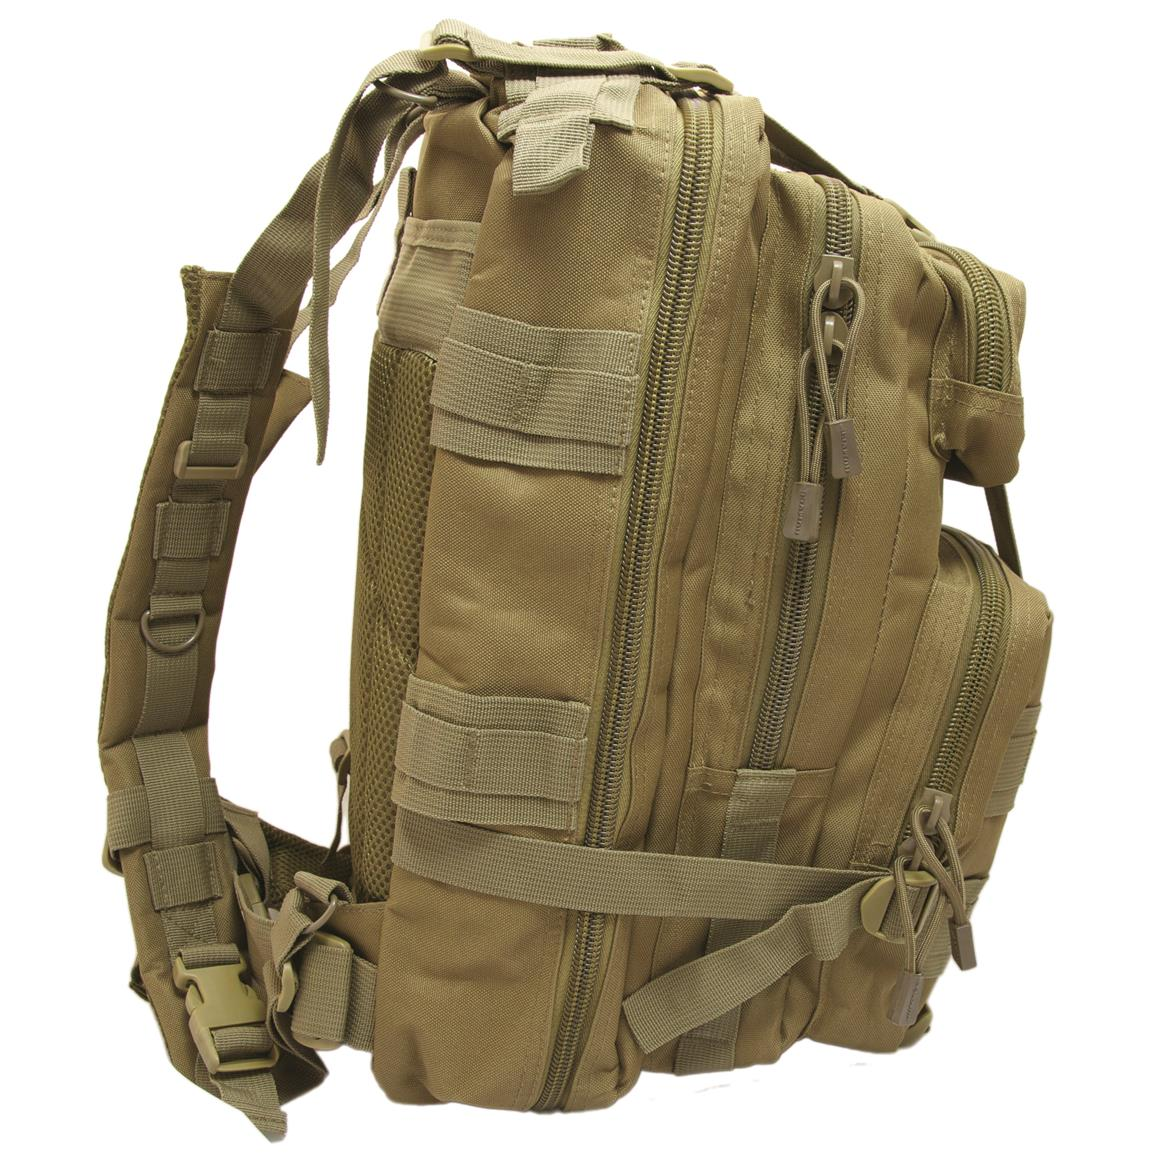 Humvee Transport Gear Bag, Tan, Side